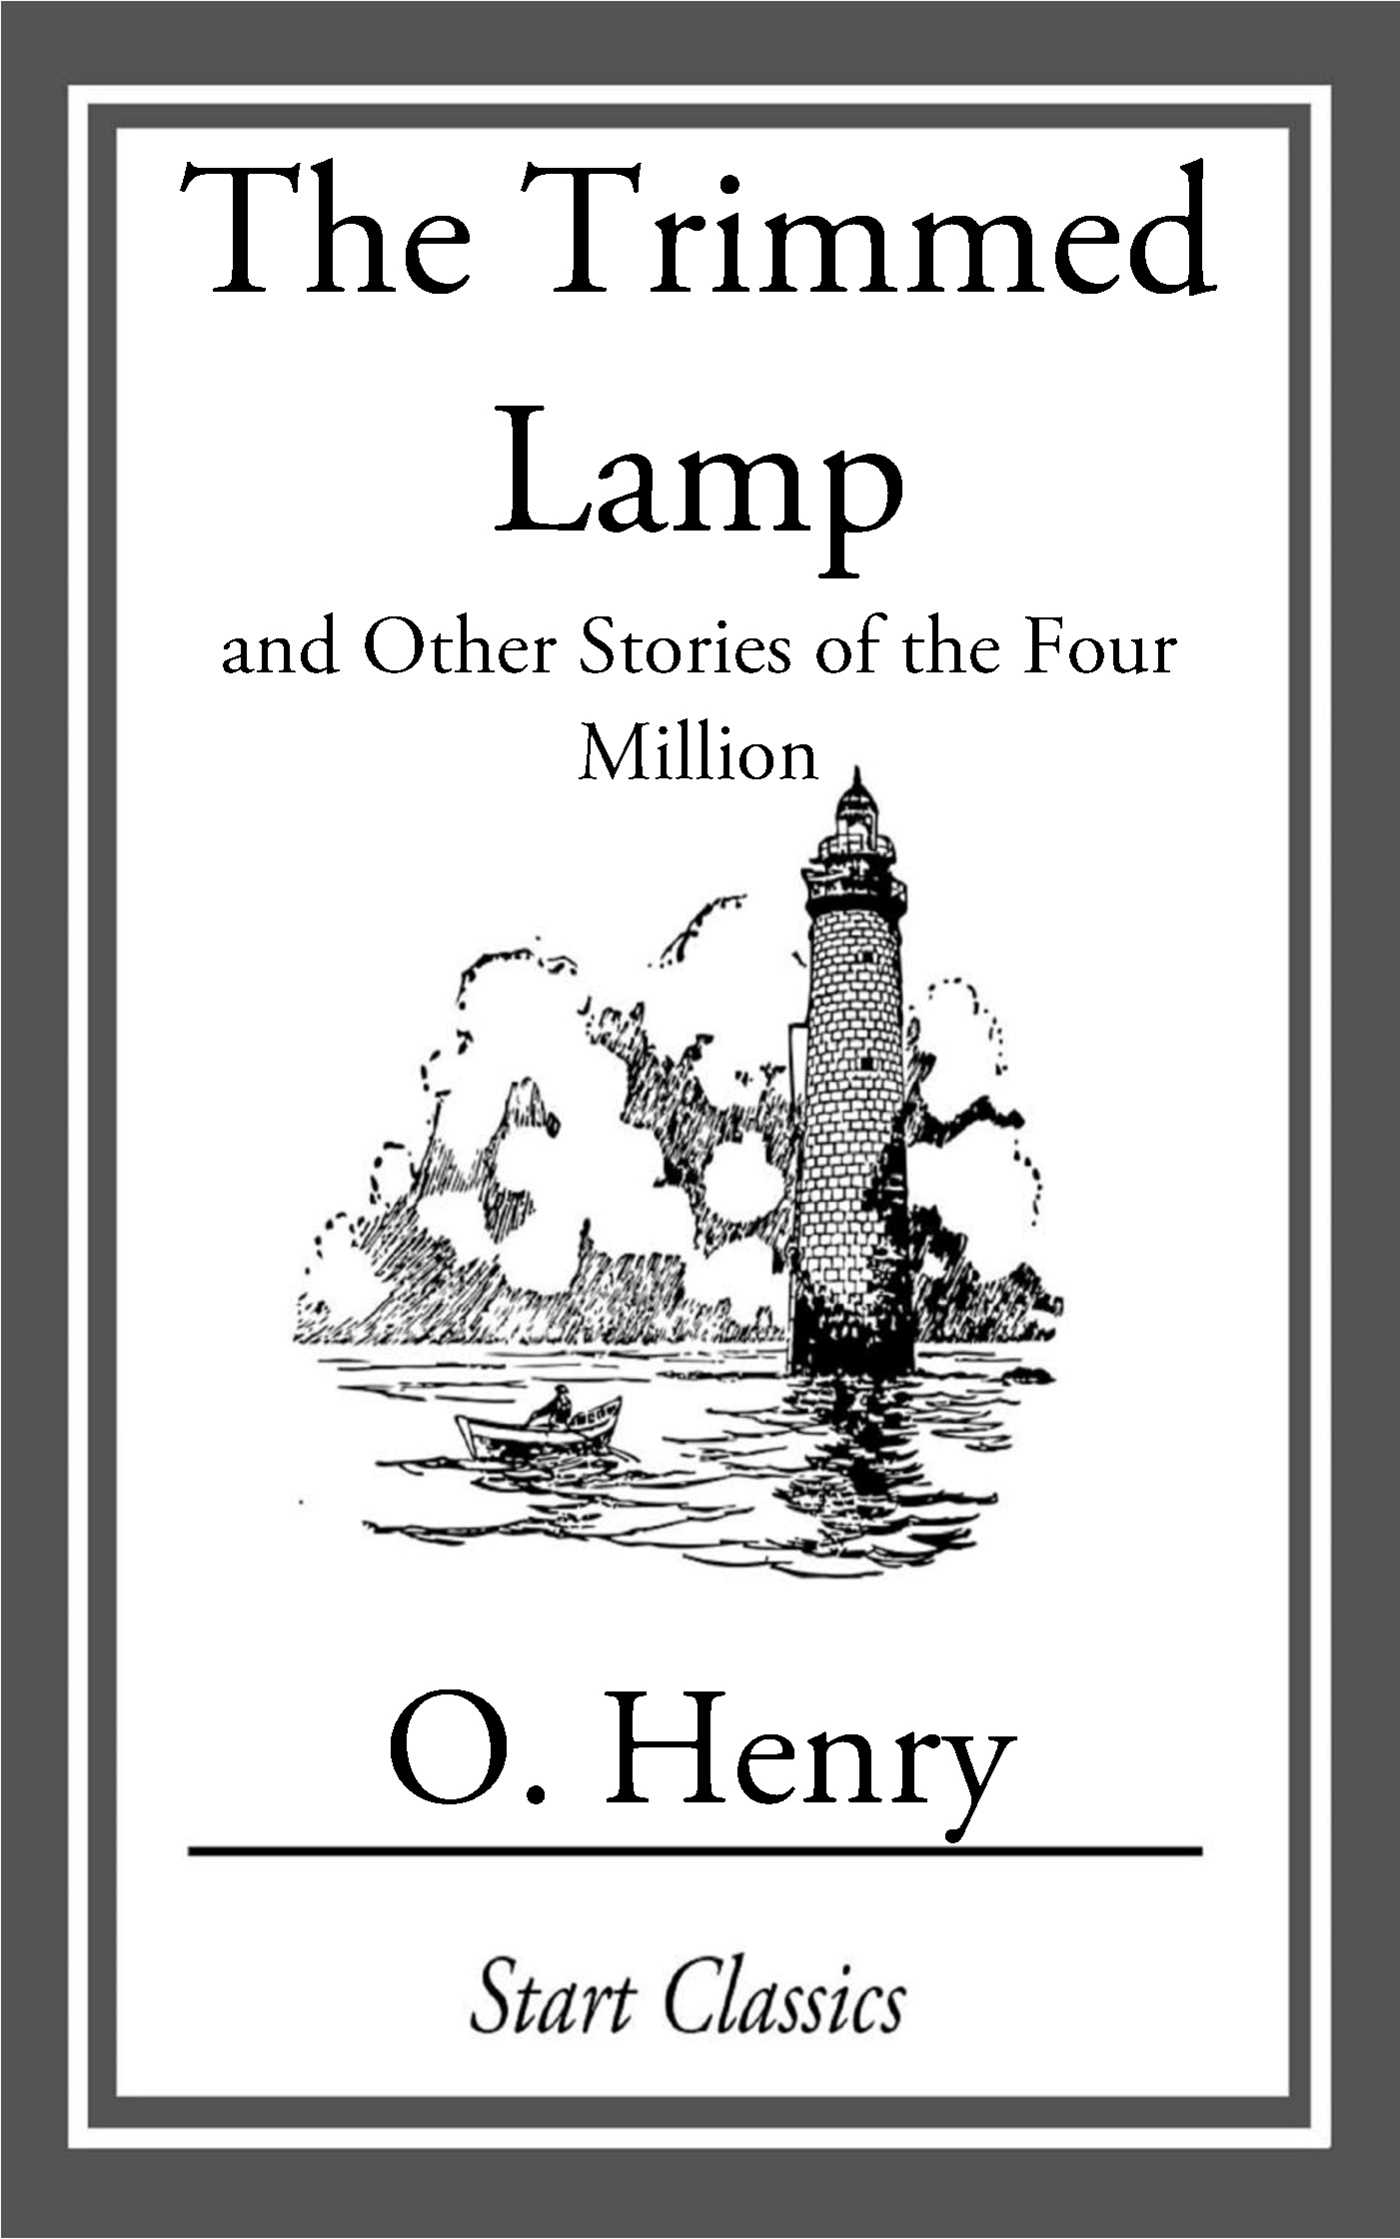 The trimmed lamp and other stories by O. Henry